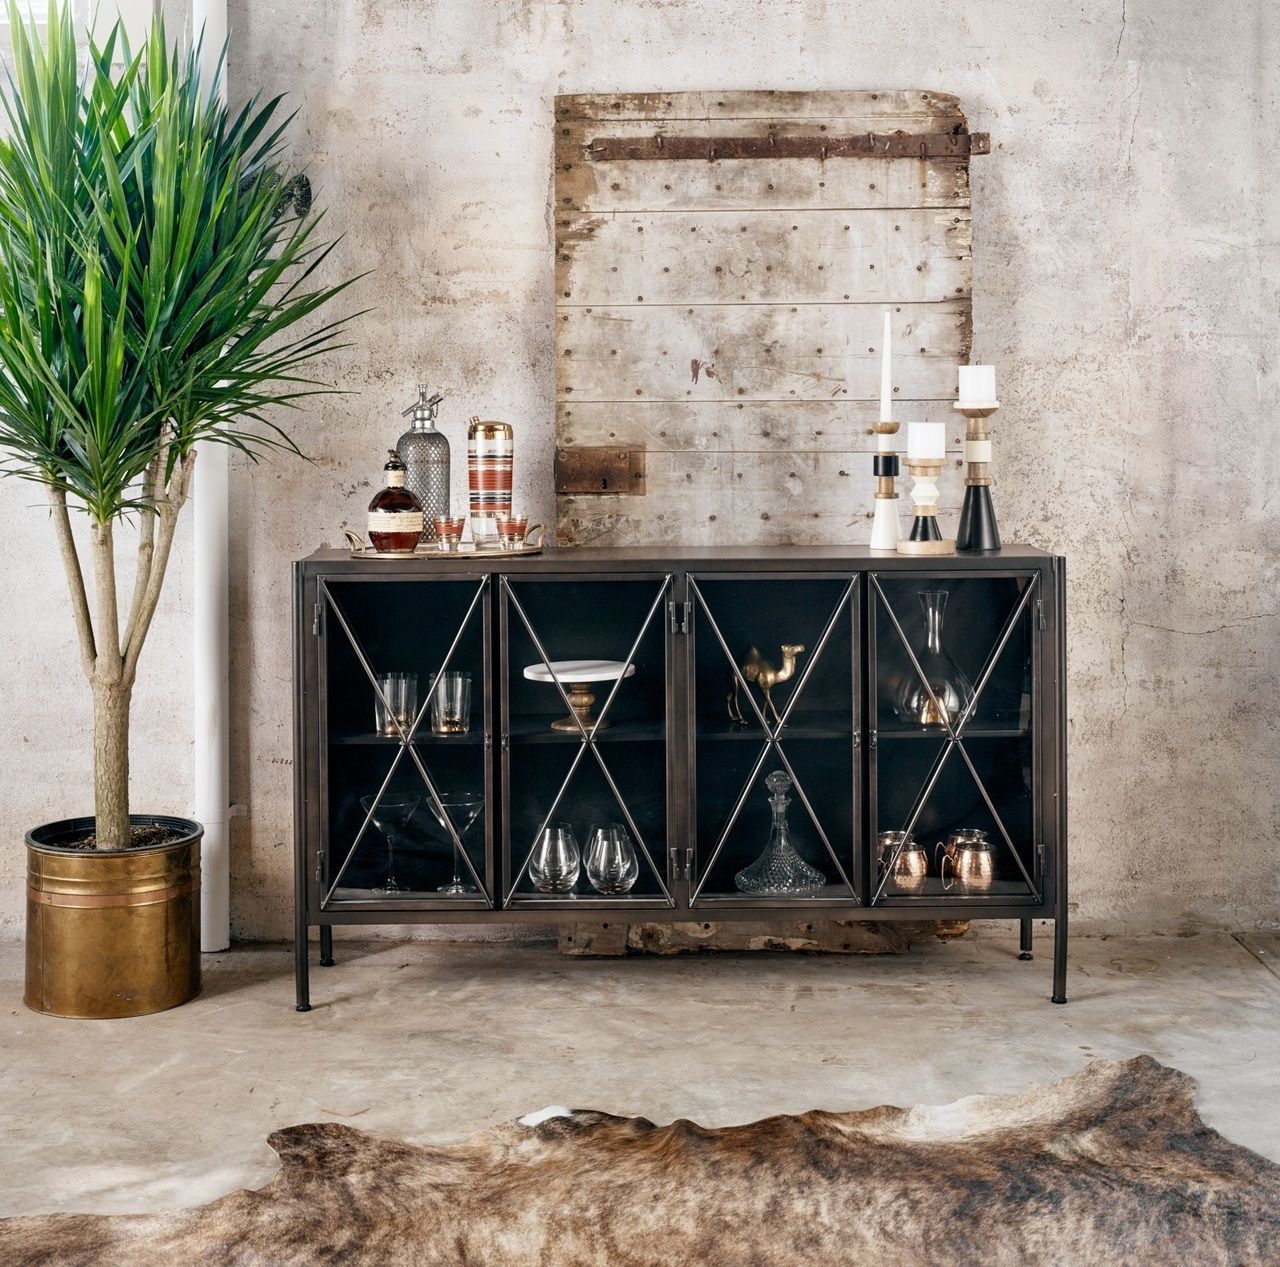 Aged Black Metal Media Console Sideboard | Decorate|Furnishings Throughout Walters Media Console Tables (View 3 of 20)